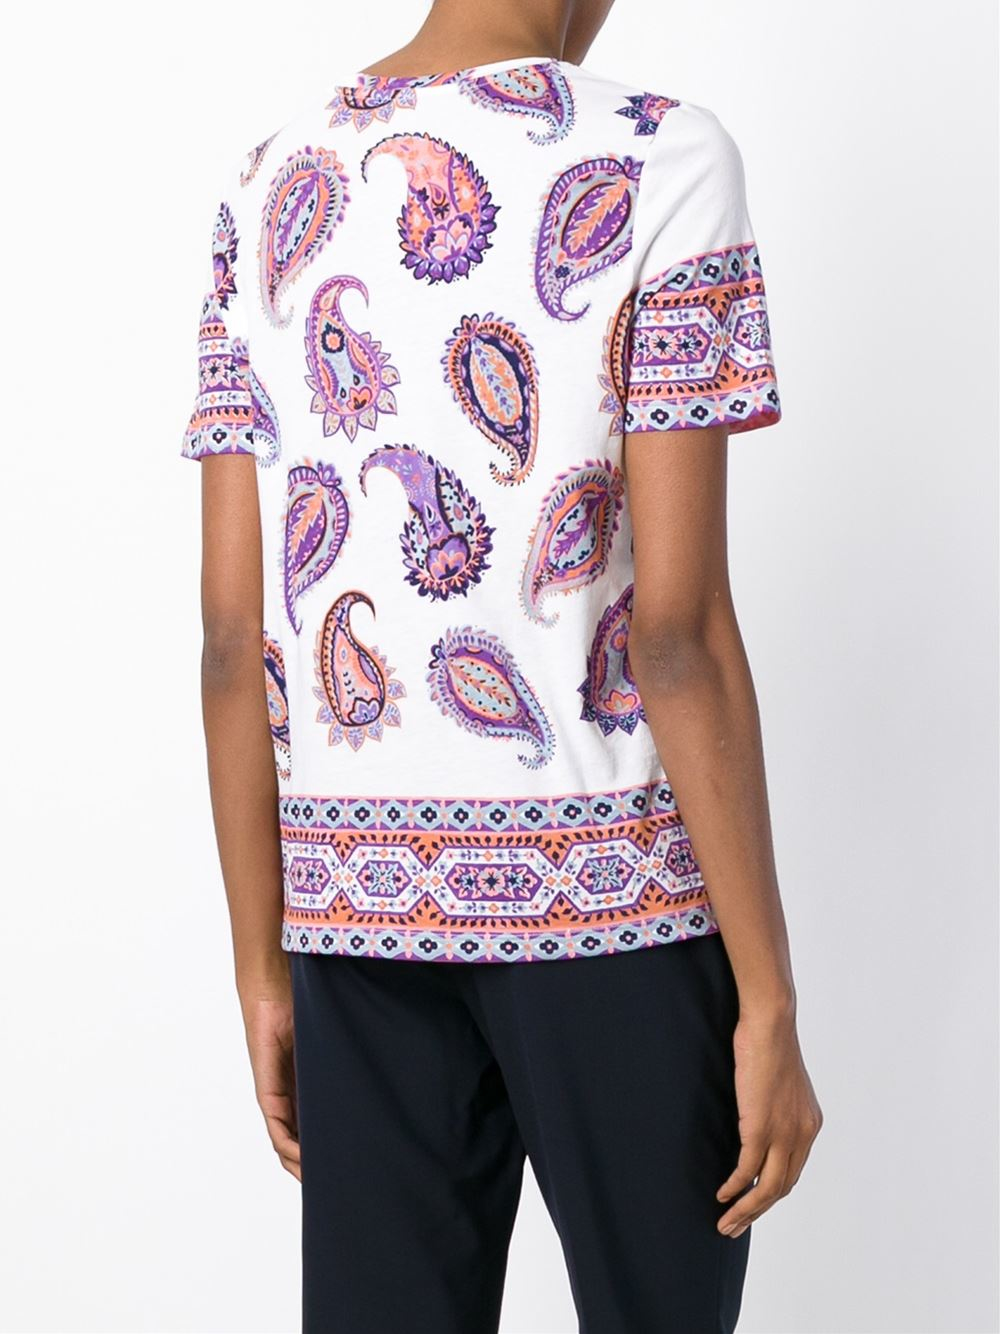 Tory burch printed cotton t shirt in multicolor lyst for Tory burch t shirt